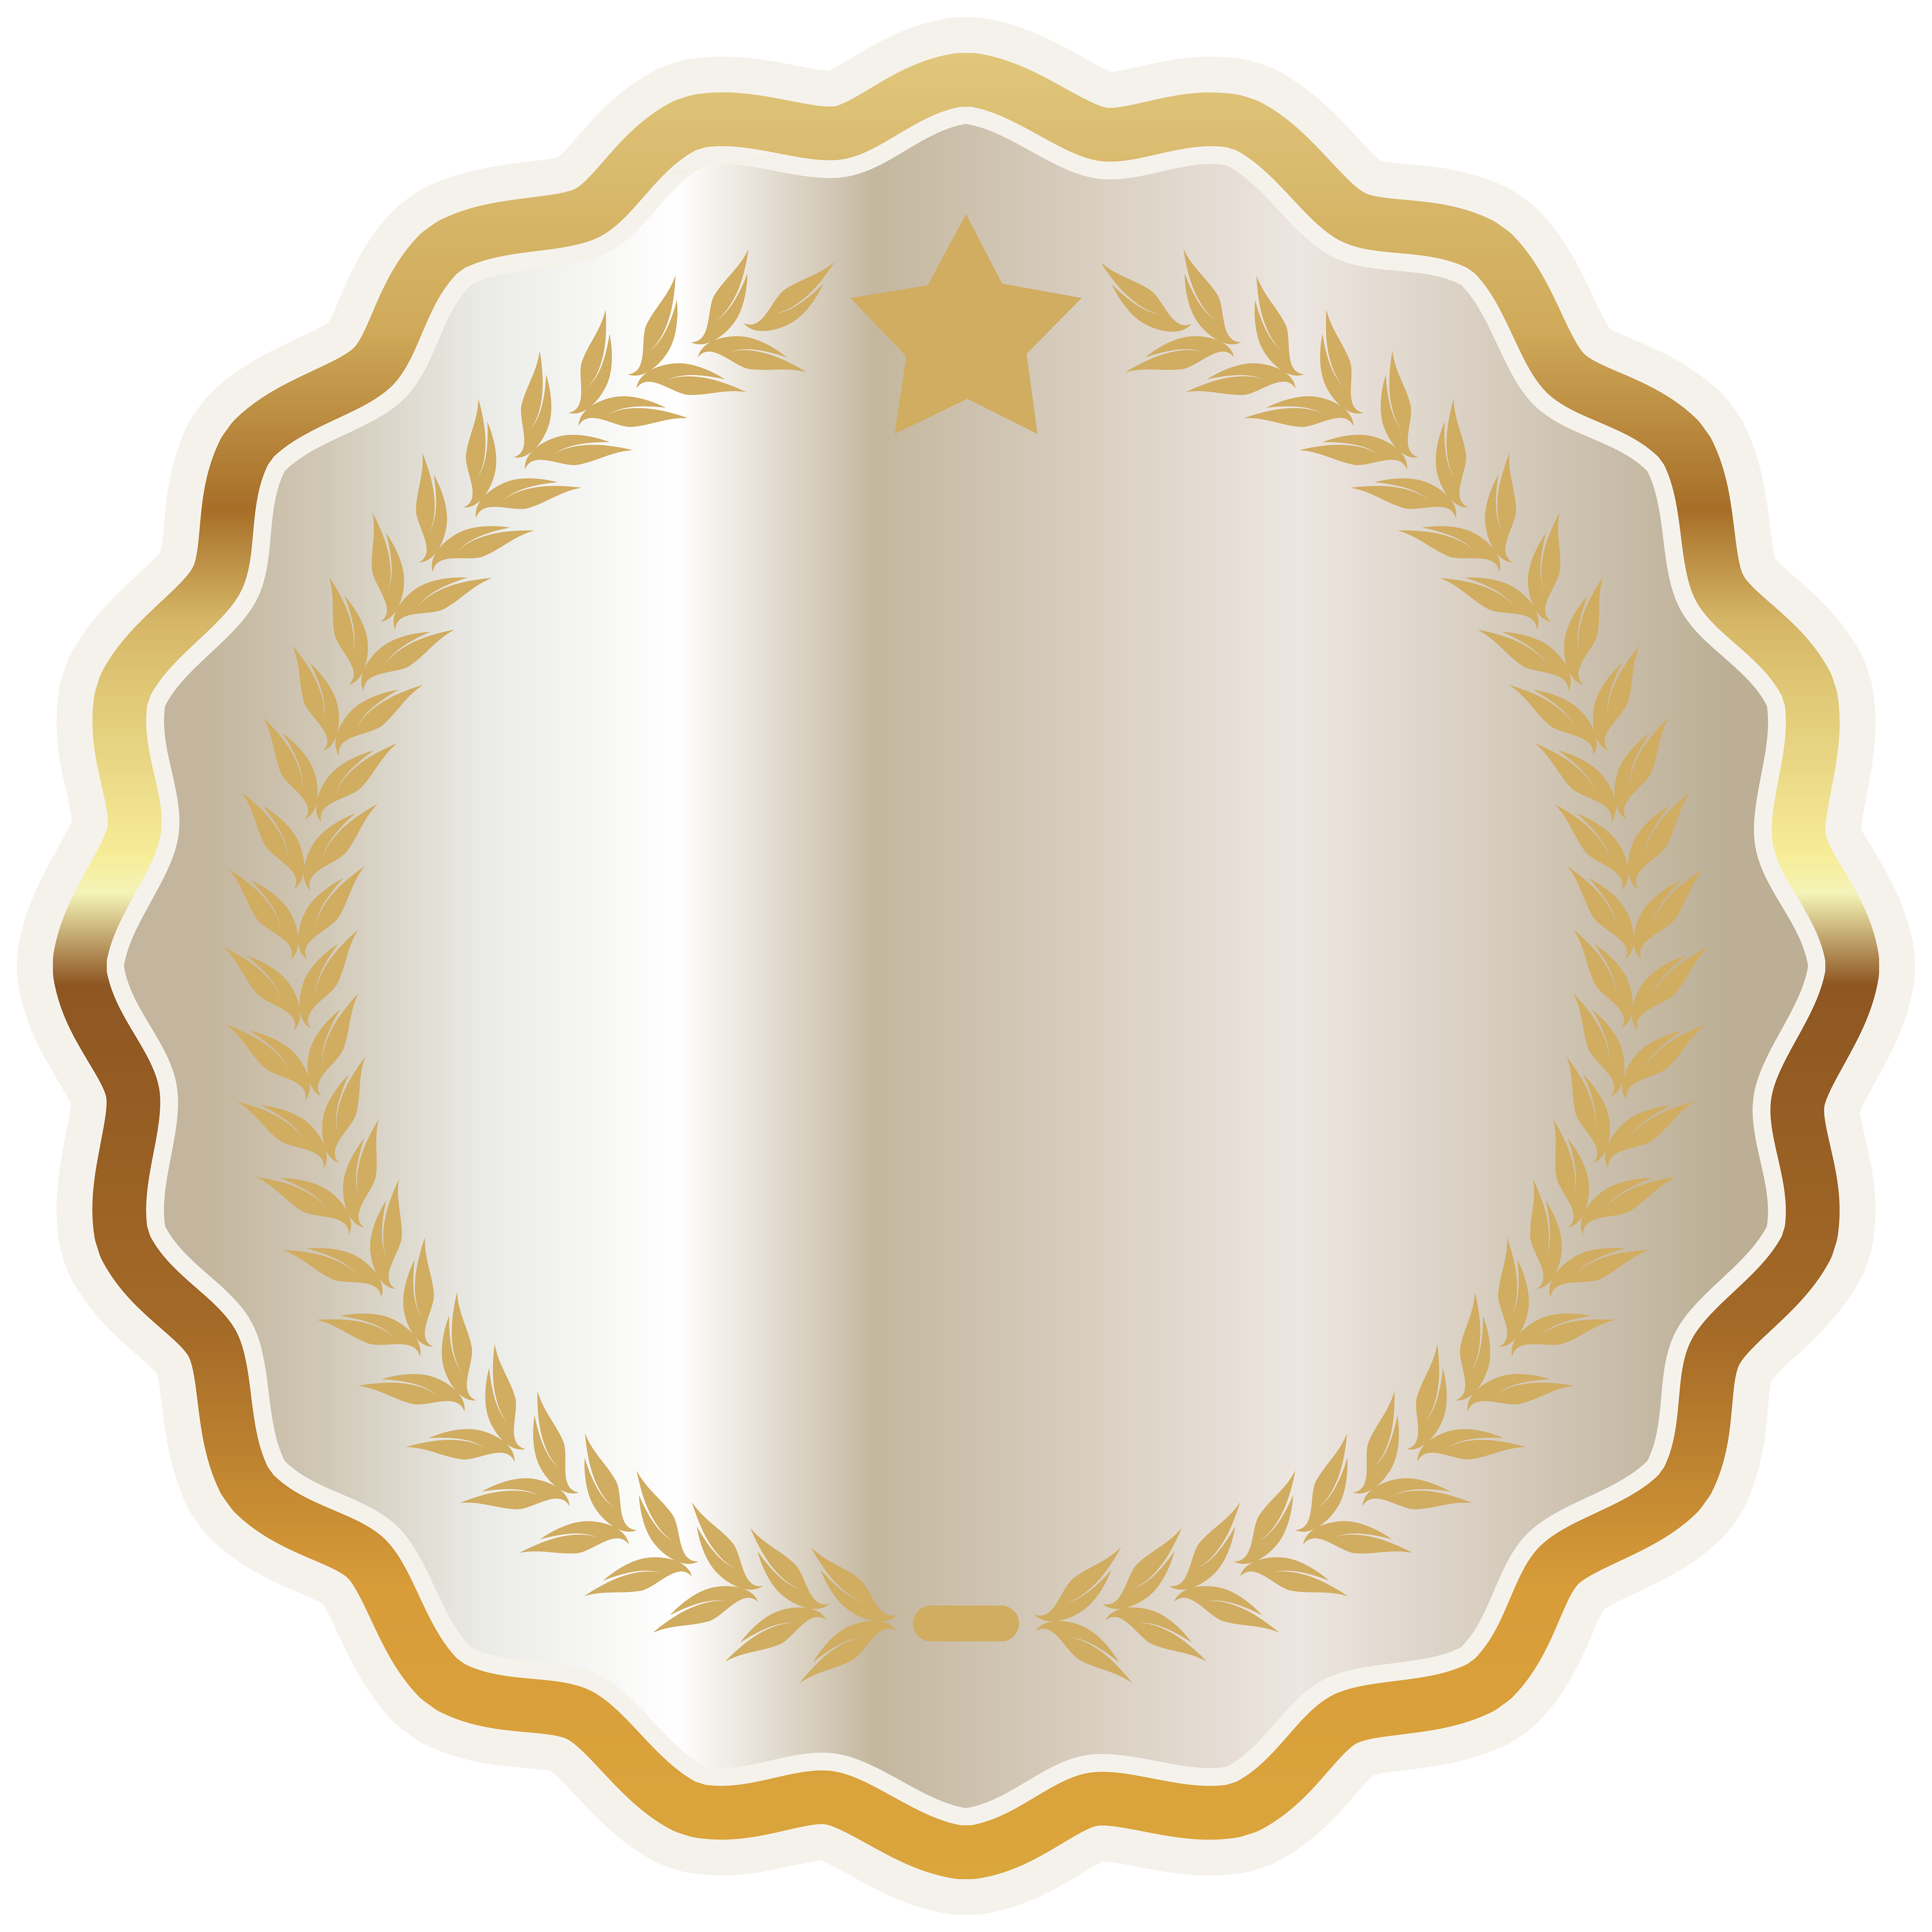 Seal clipart easy. White badge png image